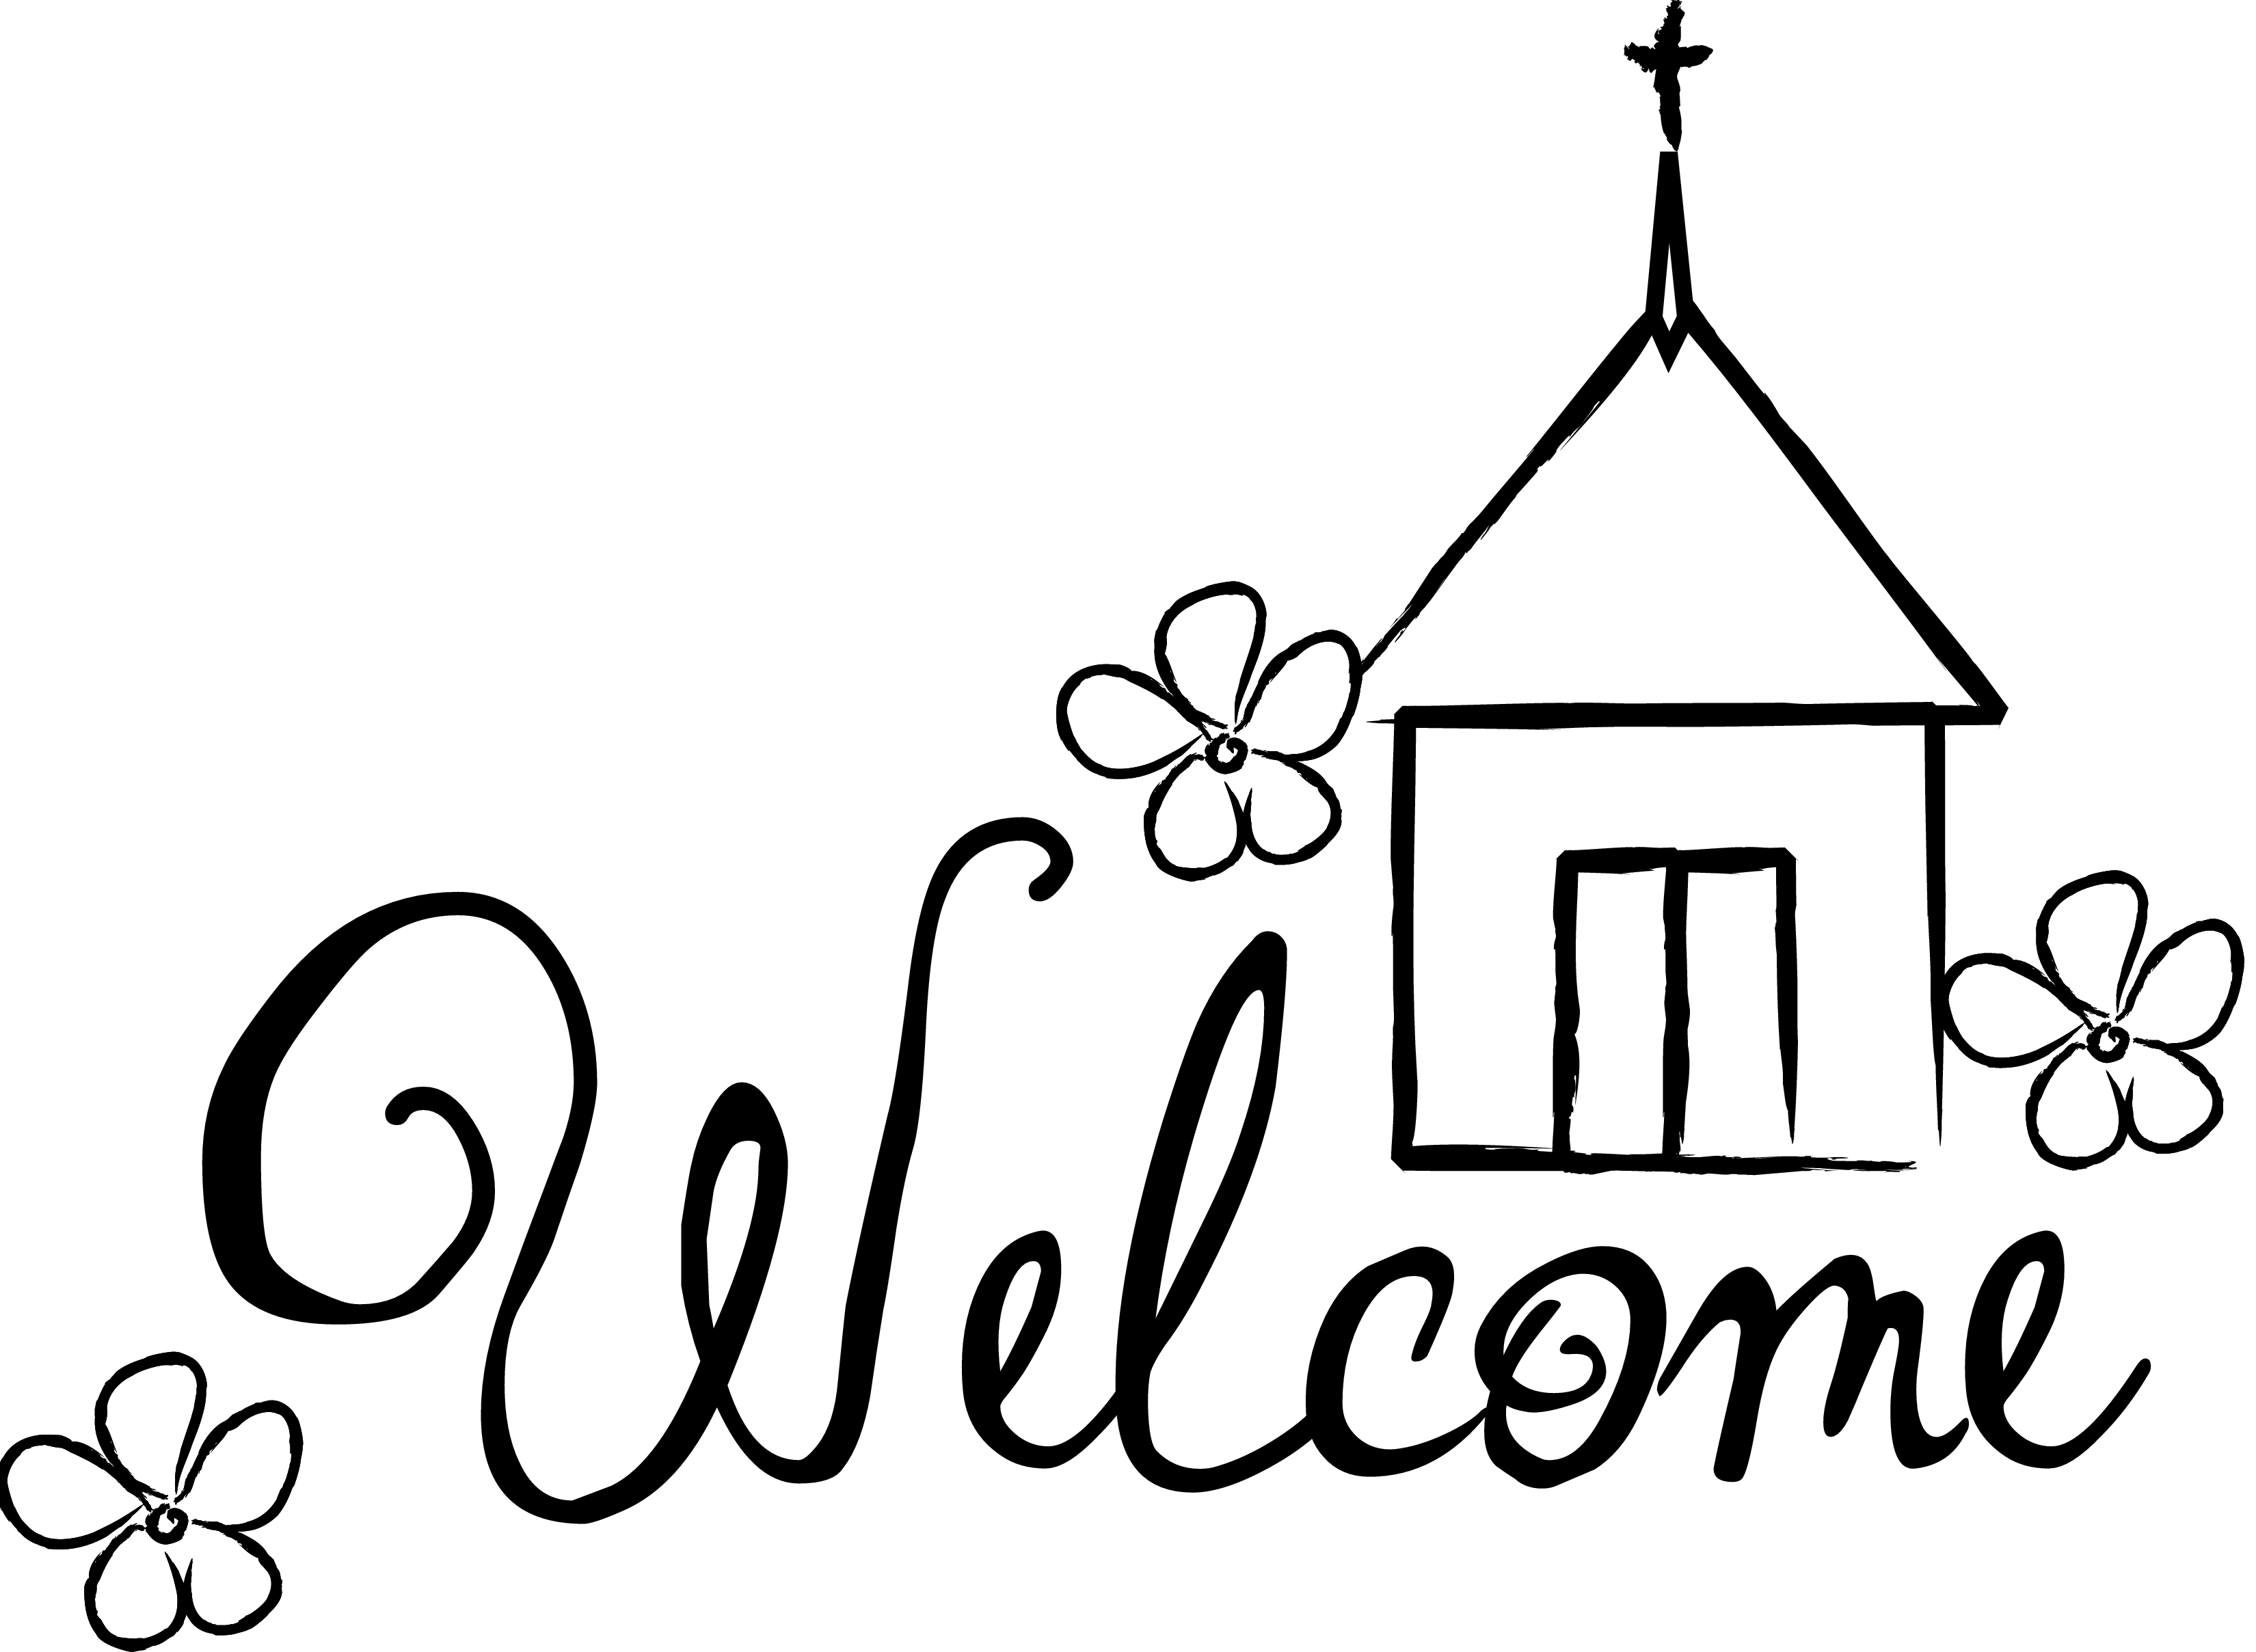 Welcome Center Clipart.